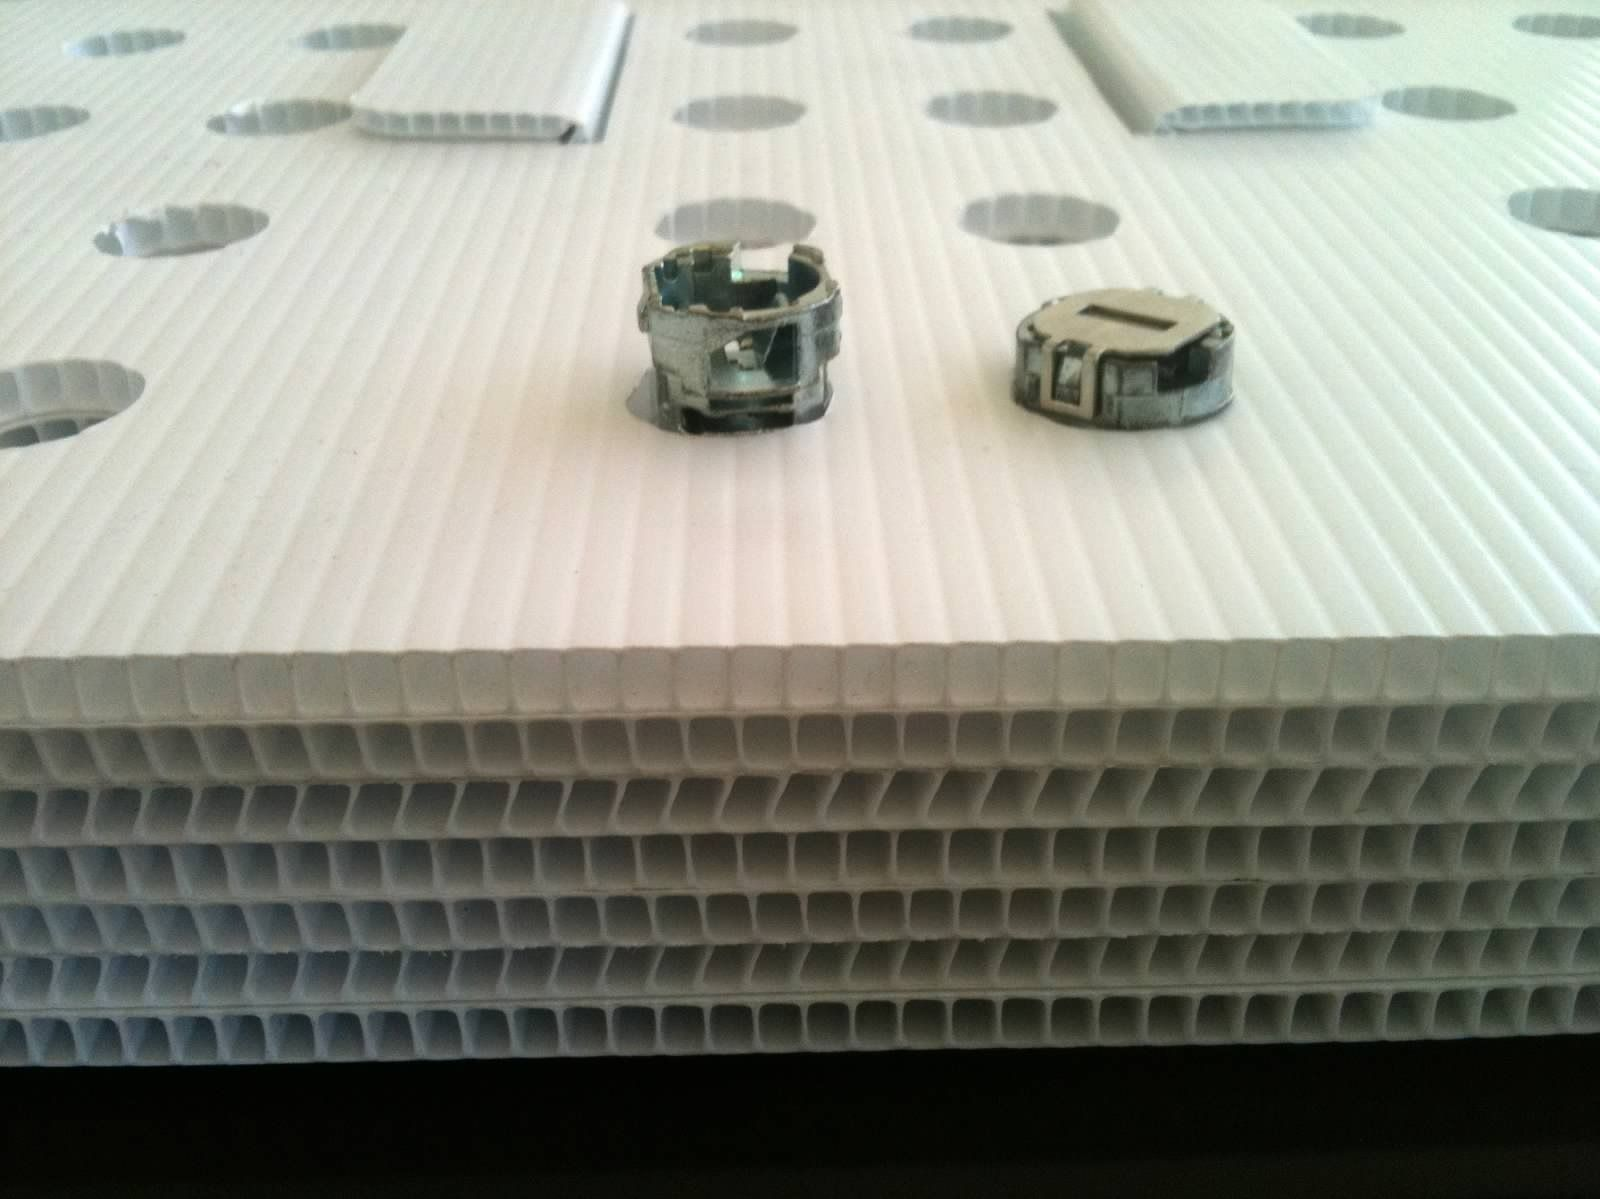 Plastic Corrugated Insert Dunnage Multilayered Pad With Punches To Pack Metal Rod Like Components Orbis Madr Industrial Packaging Corrugated Metal